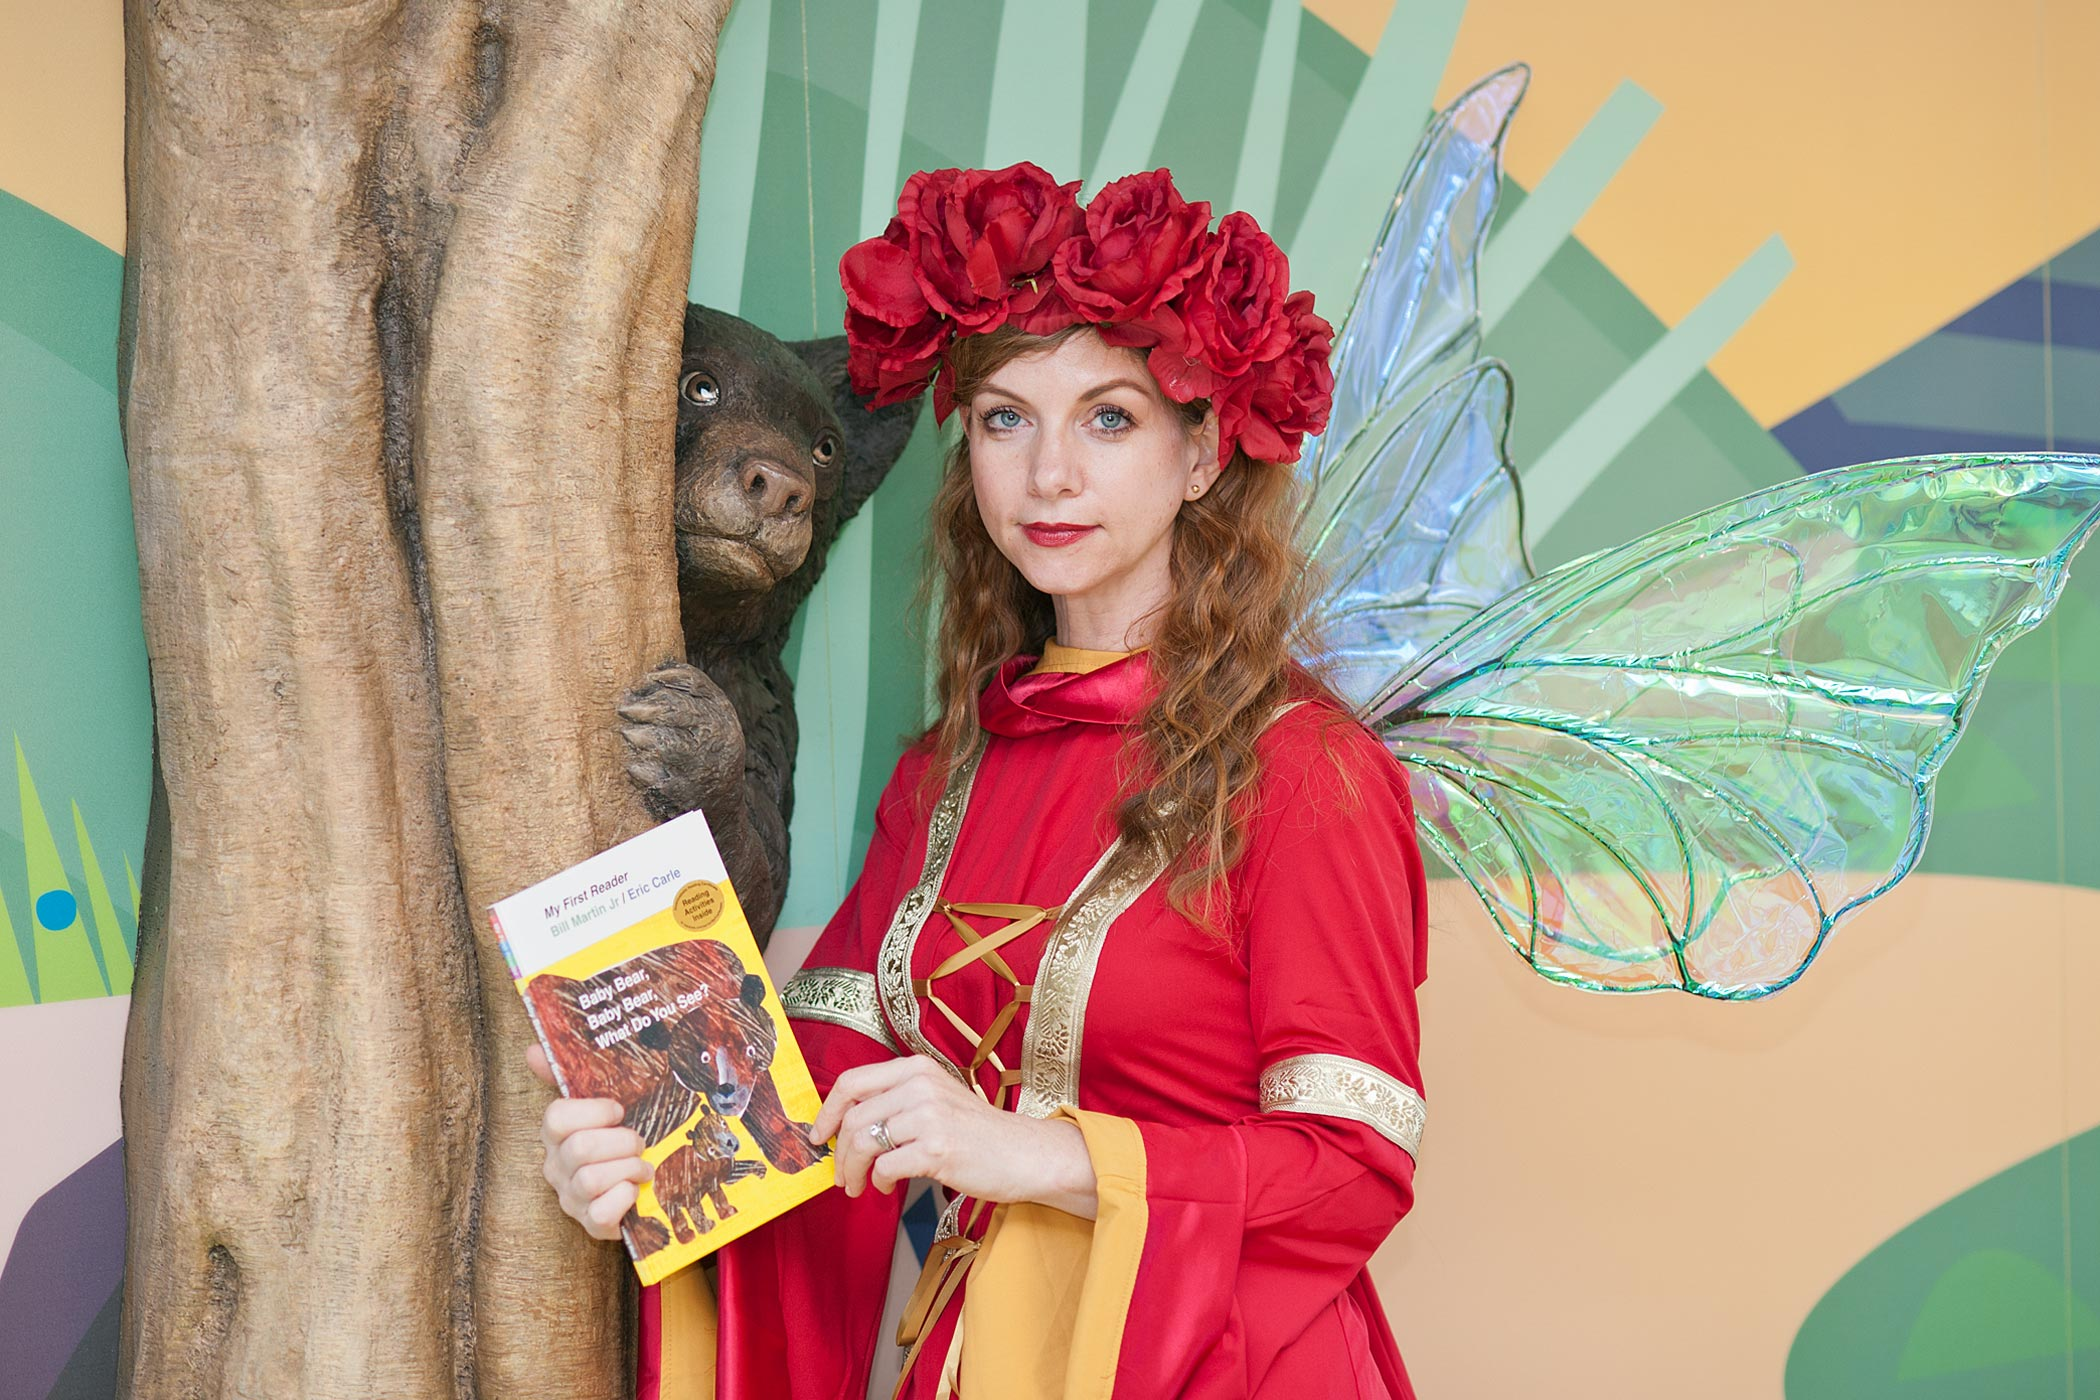 Librarian Kimberley Barker becomes Briar the Book Faery when she reads to children at the UVA Medical Center.